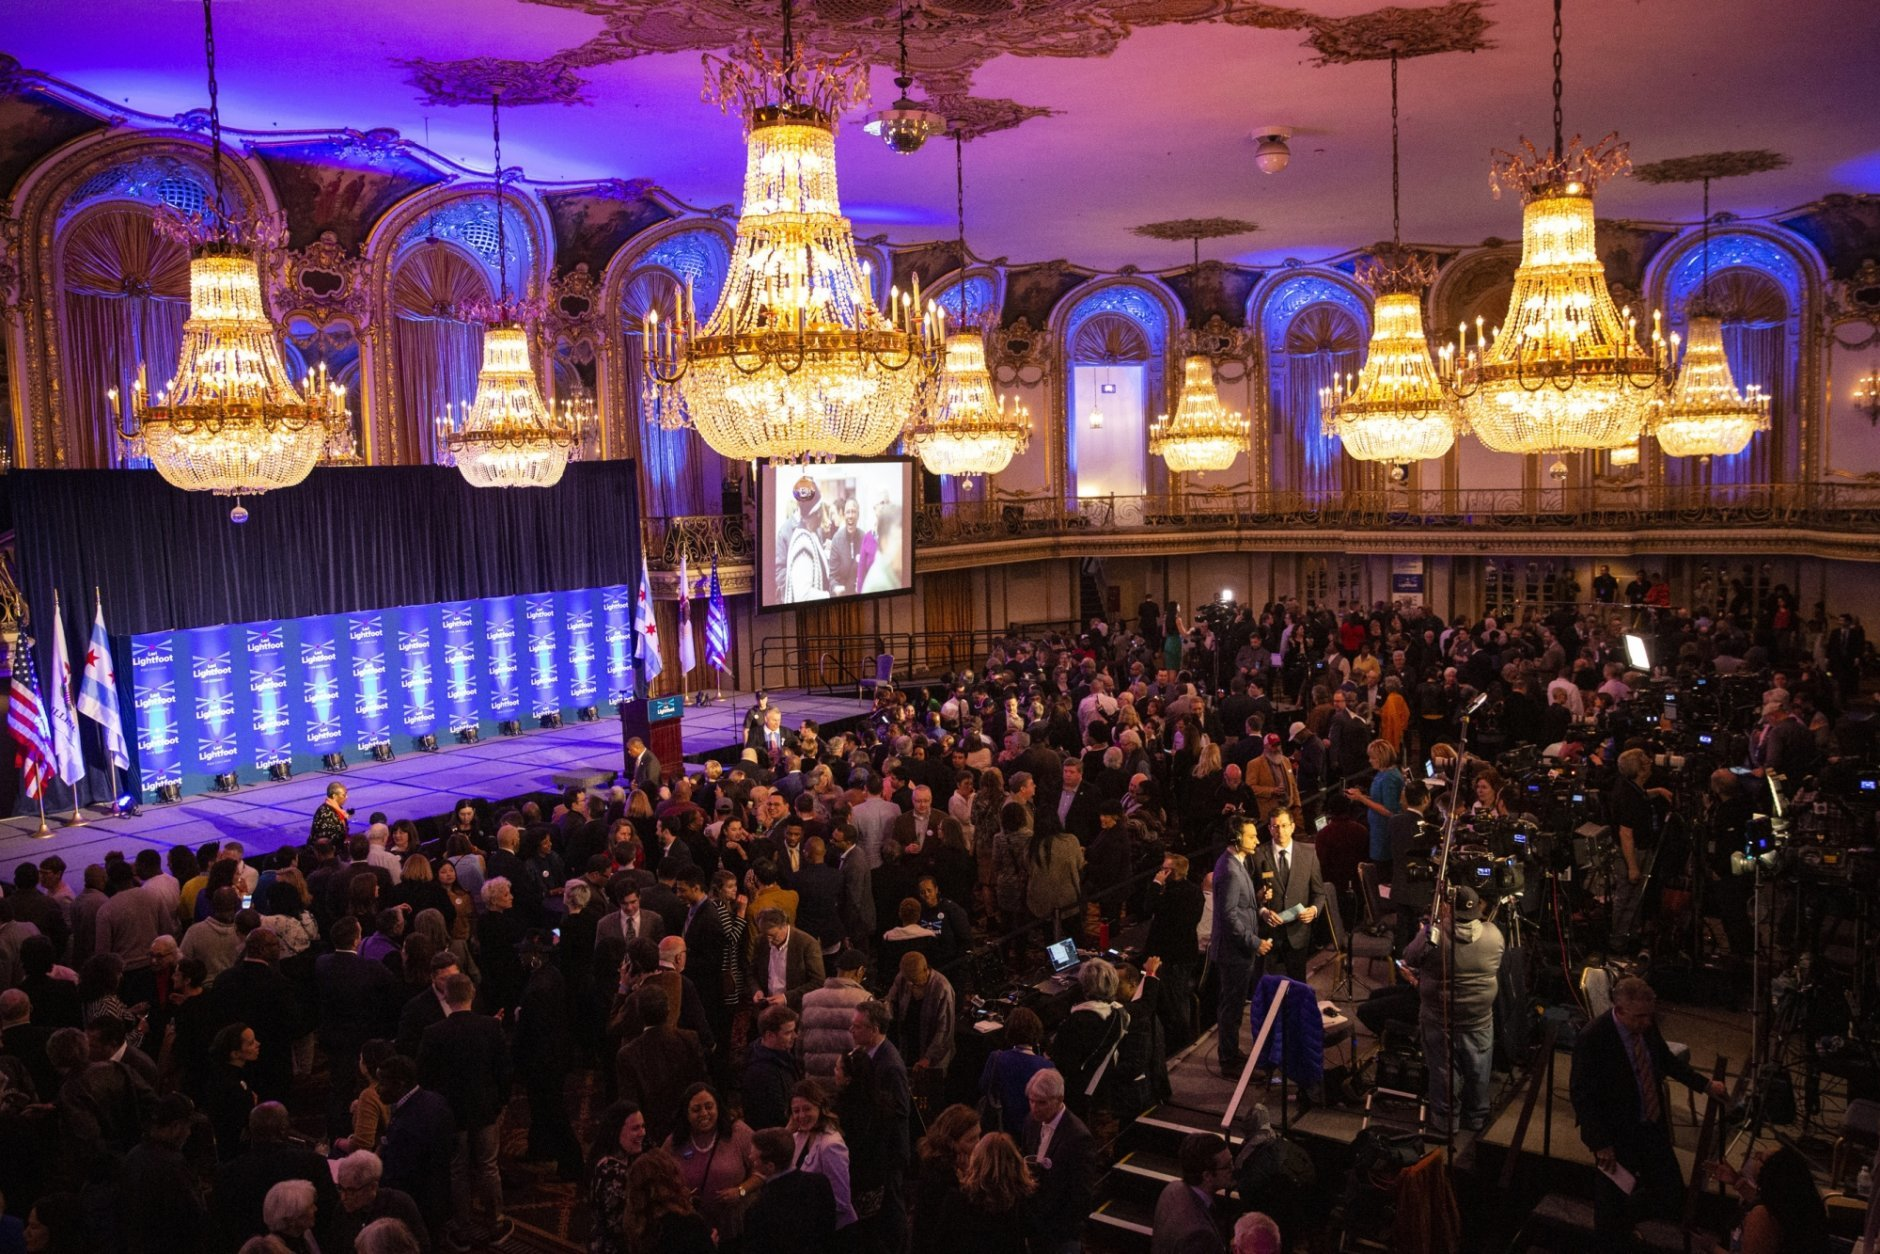 People gather in the Grand Ballroom at the Hilton Chicago for mayoral candidate Lori Lightfoot's election night rally, Tuesday, April 2, 2019. (Ashlee Rezin/Chicago Sun-Times via AP)